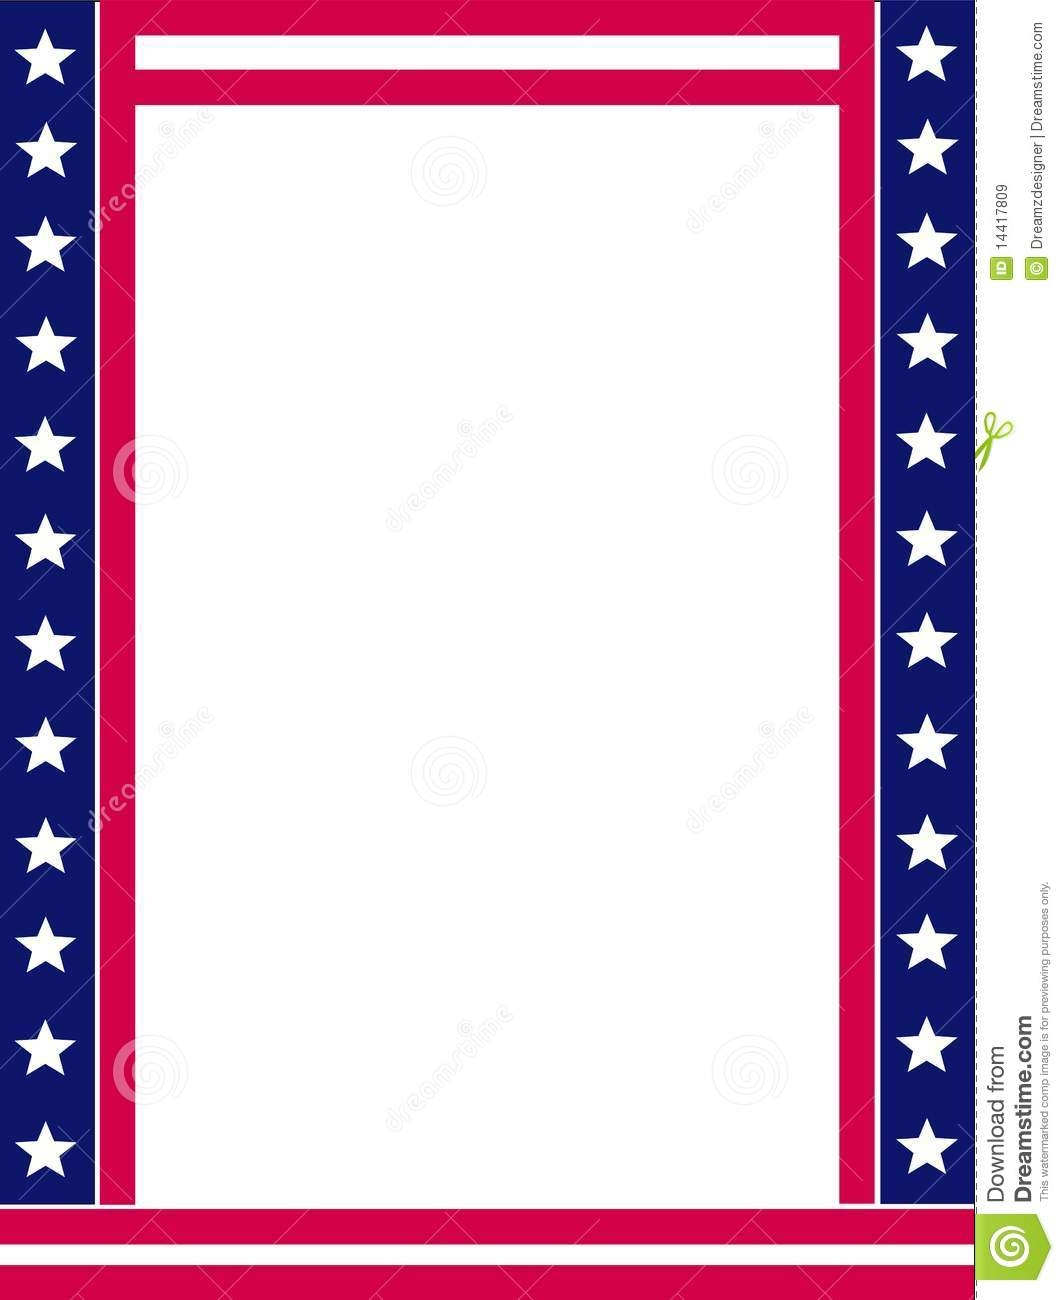 united states flag coloring page - royalty free stock images patriotic border image